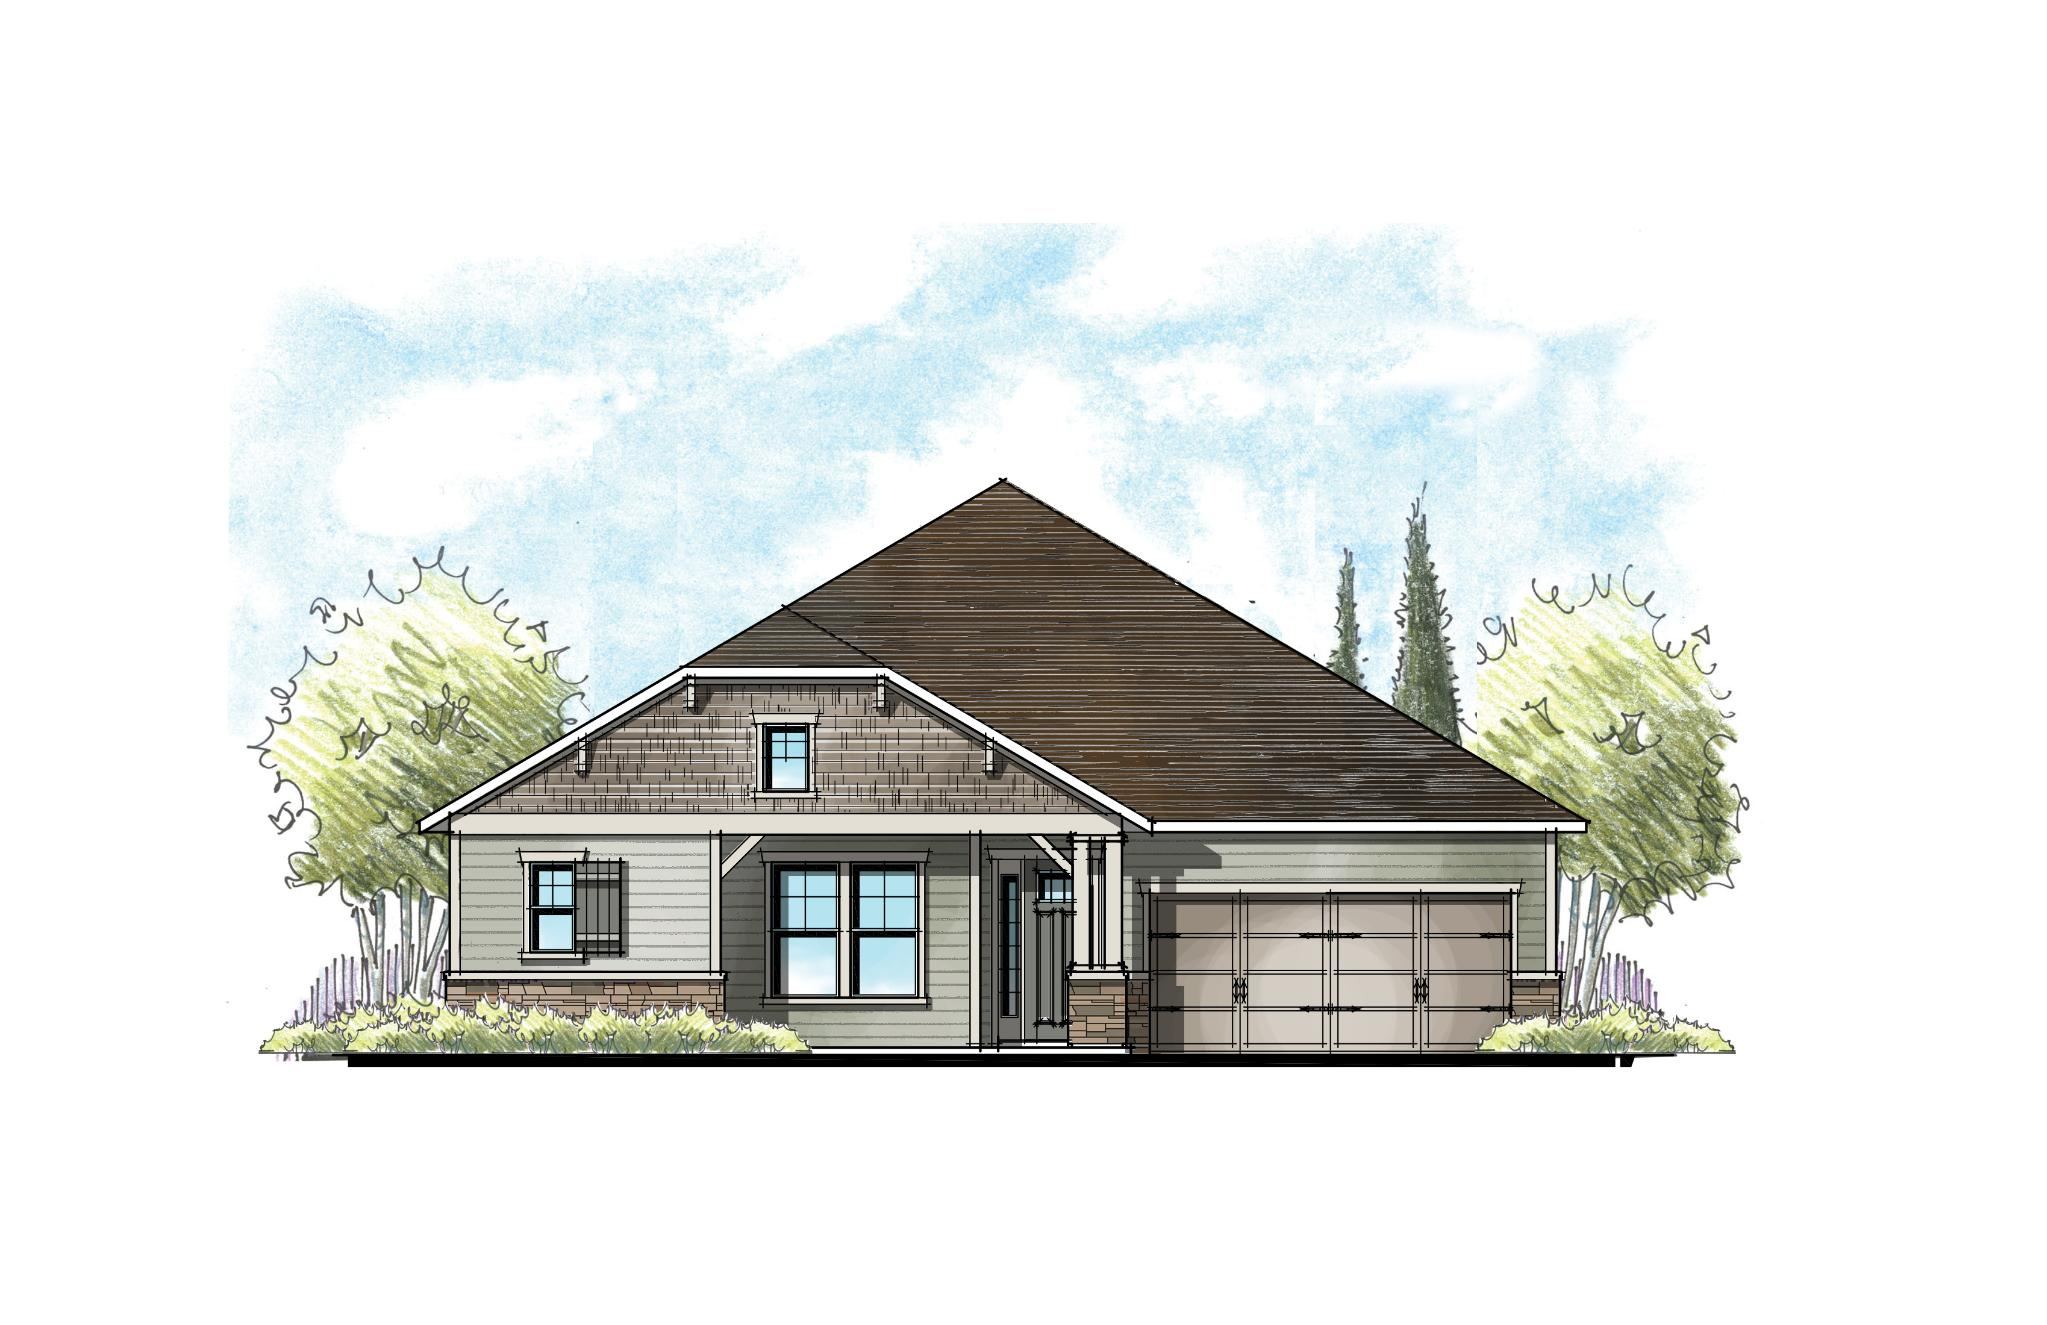 The Ellaville Urban Rustic Elevation 4